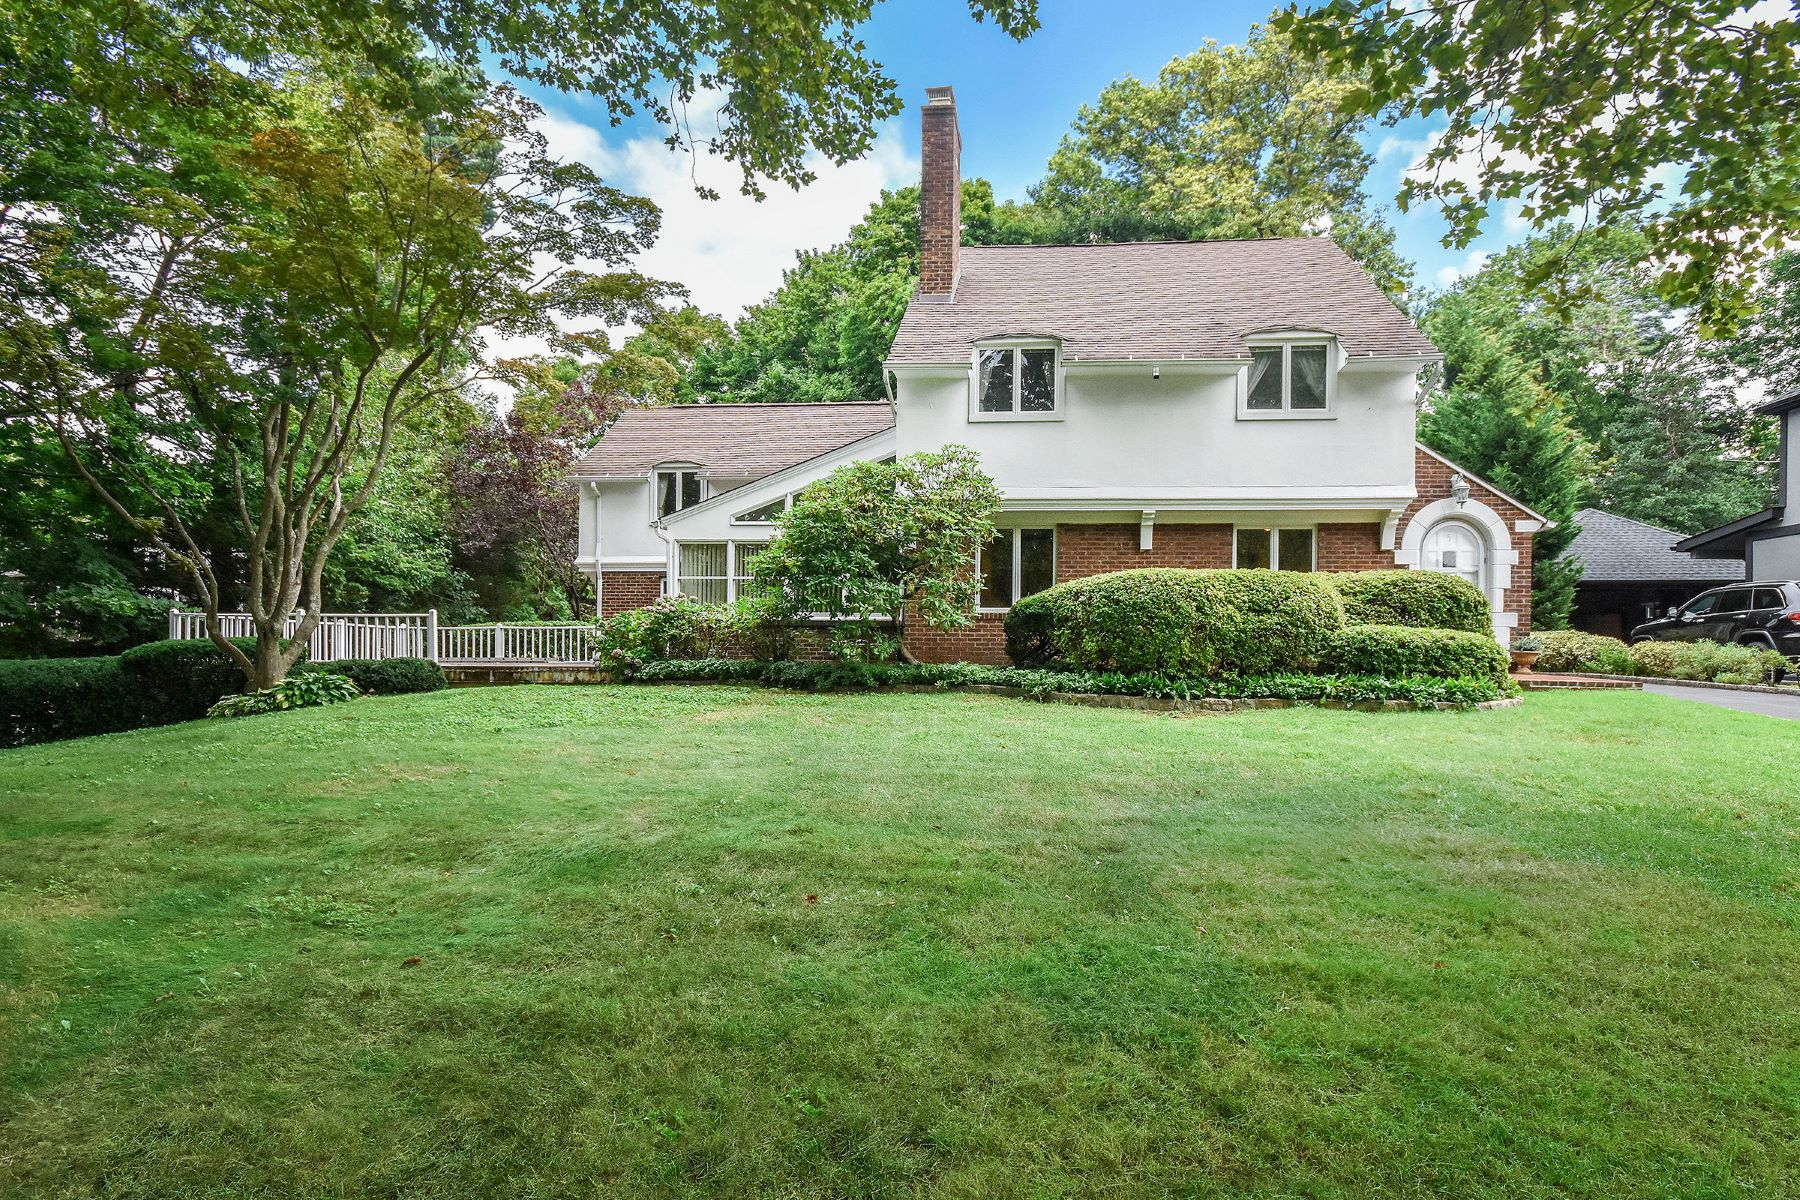 Single Family Homes for Active at 5 Crescent Road, Port Washington, Ny, 11050 5 Crescent Road Port Washington, New York 11050 United States